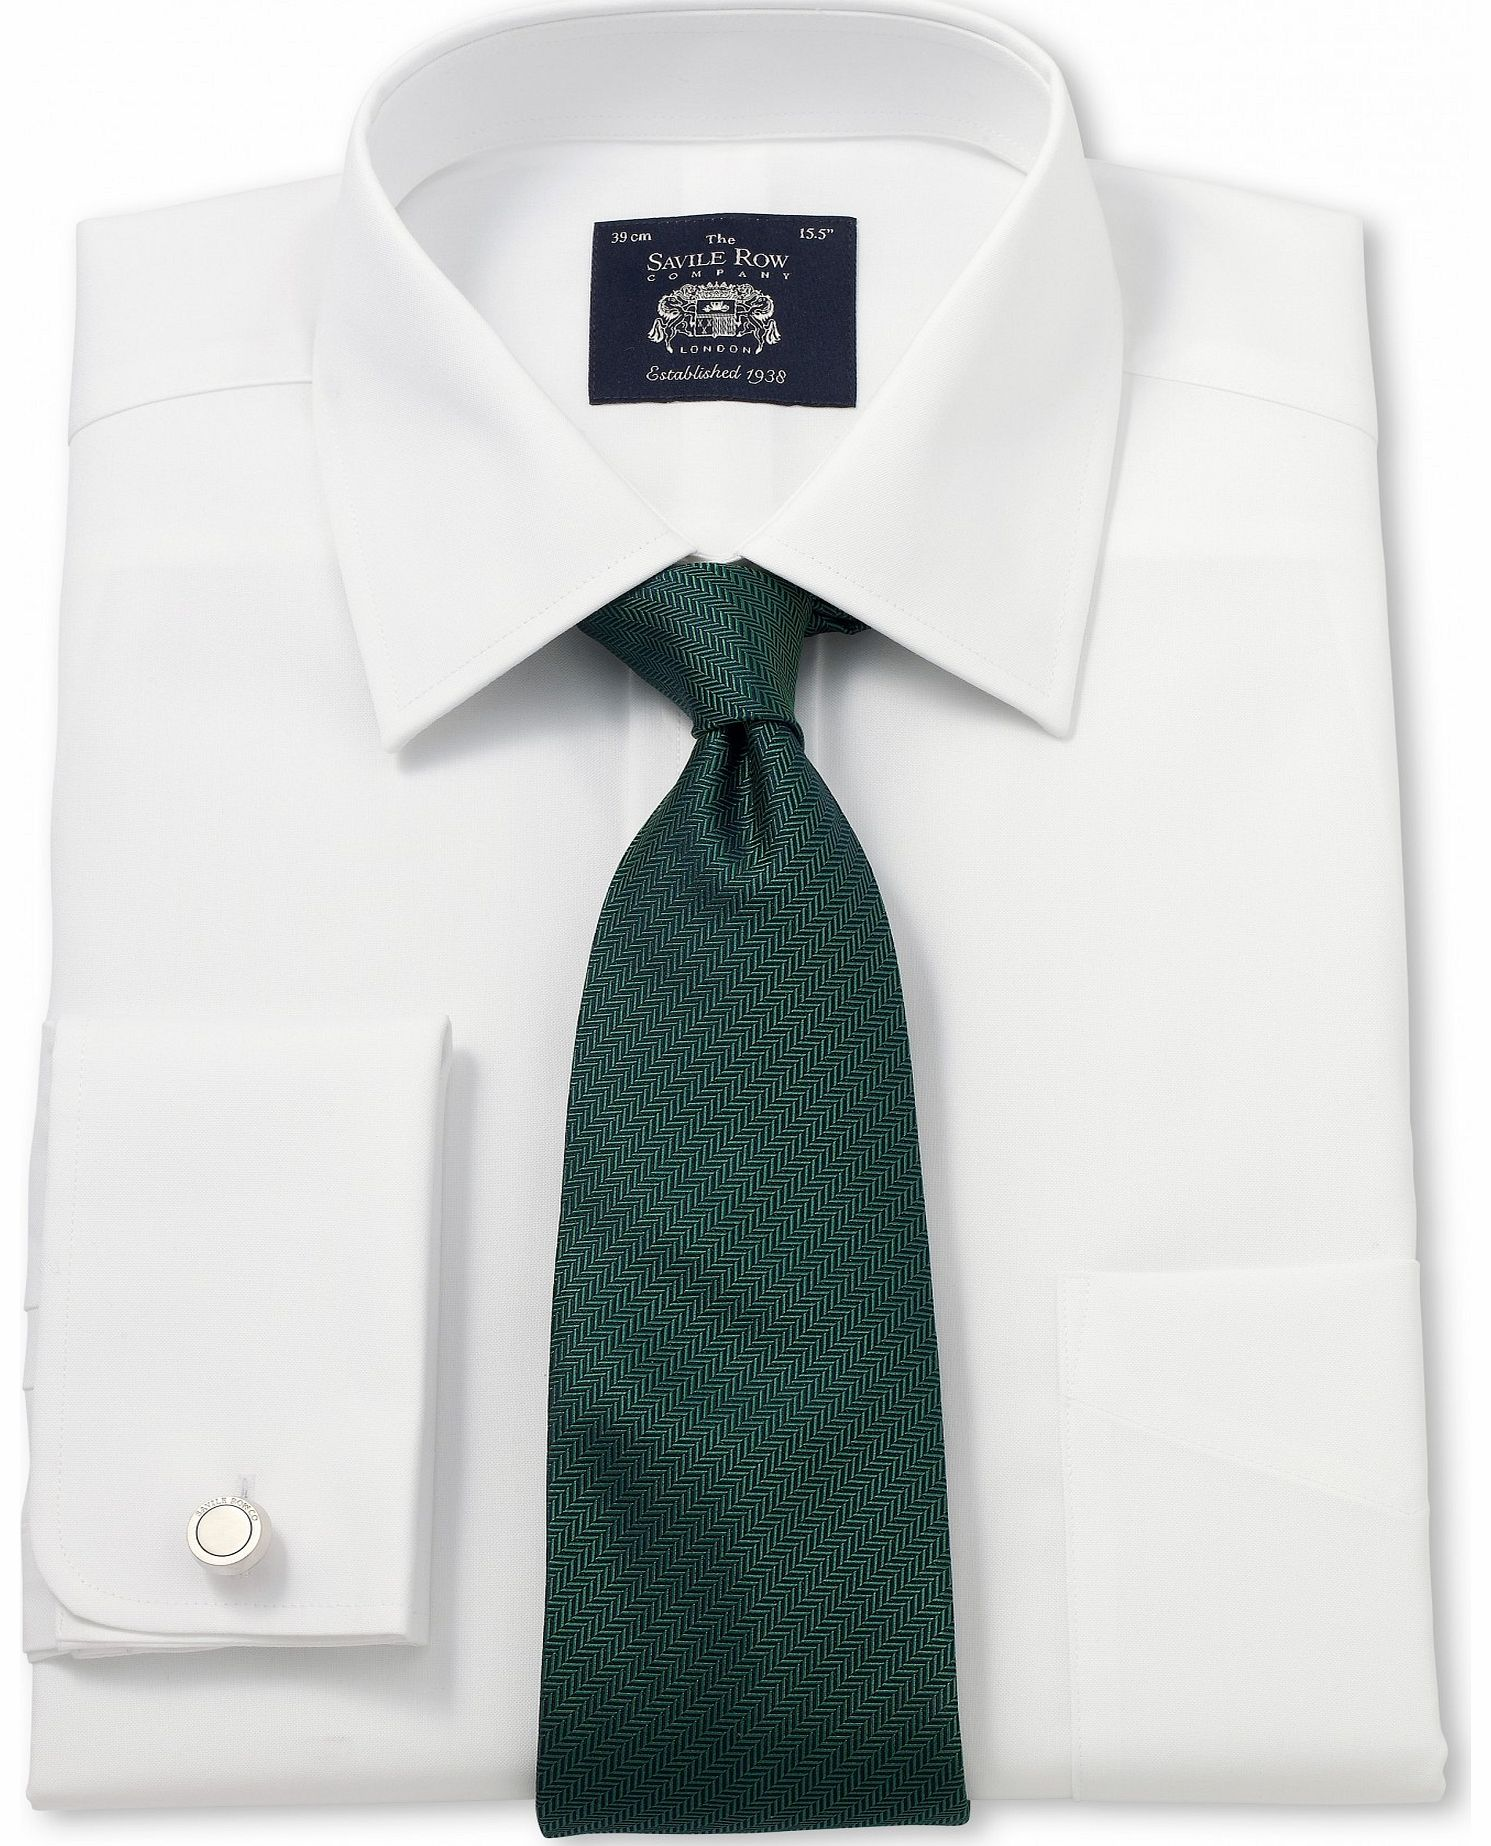 Savile Row Company White Non-Iron Classic Fit Shirt 16`` Double product image